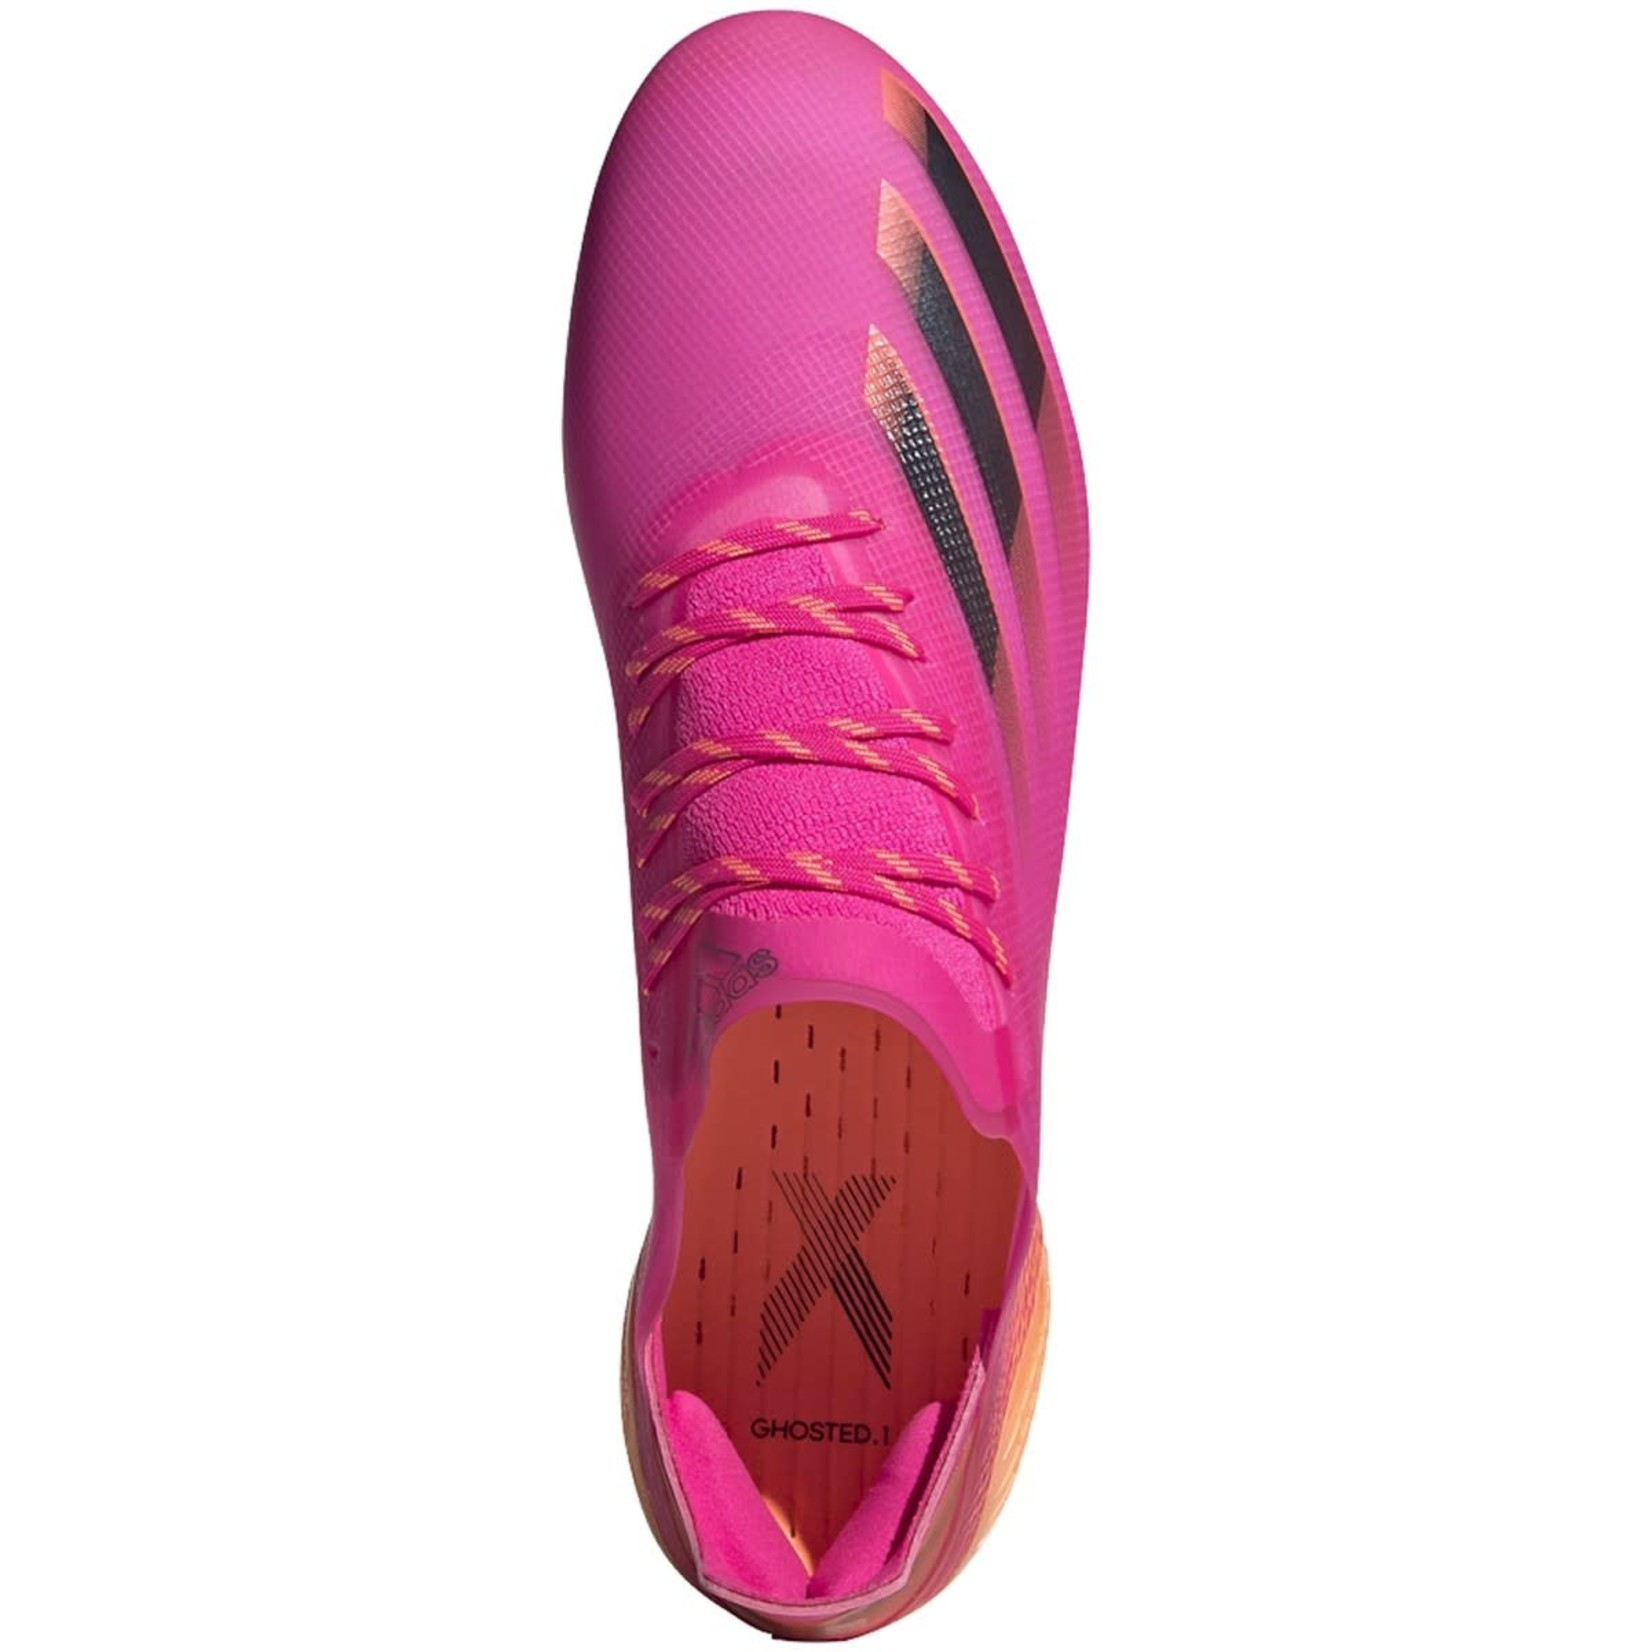 ADIDAS X GHOSTED.1 FG (PINK/BLACK)